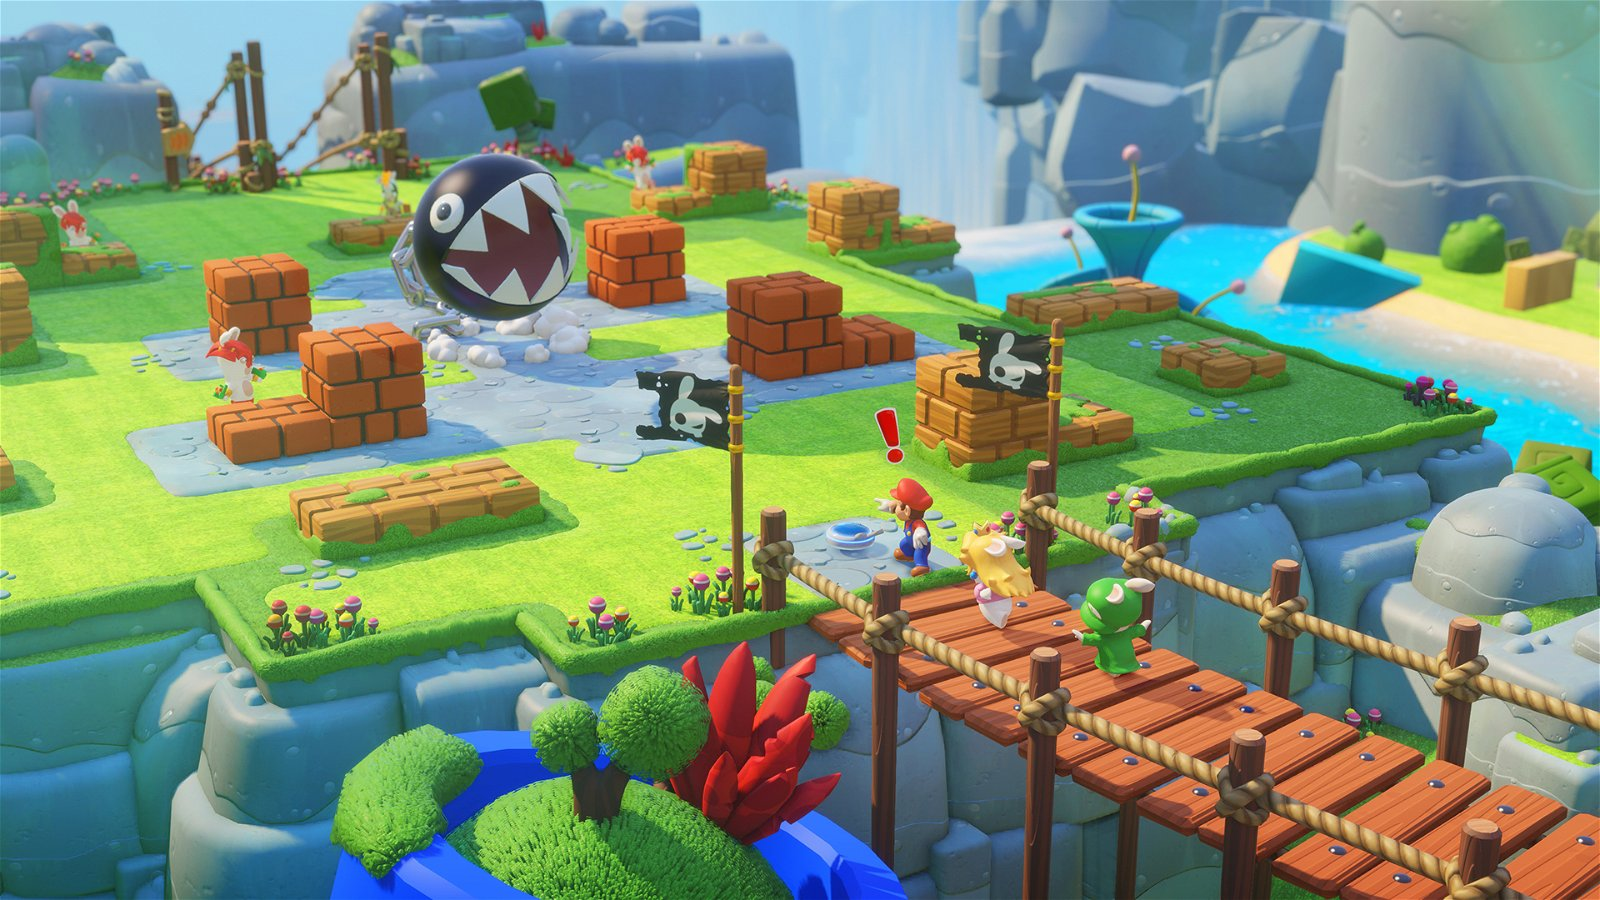 Mario + Rabbids: Kingdom Battle (Switch) Review: Engrossing Tactics & Gross-Out Humor 2